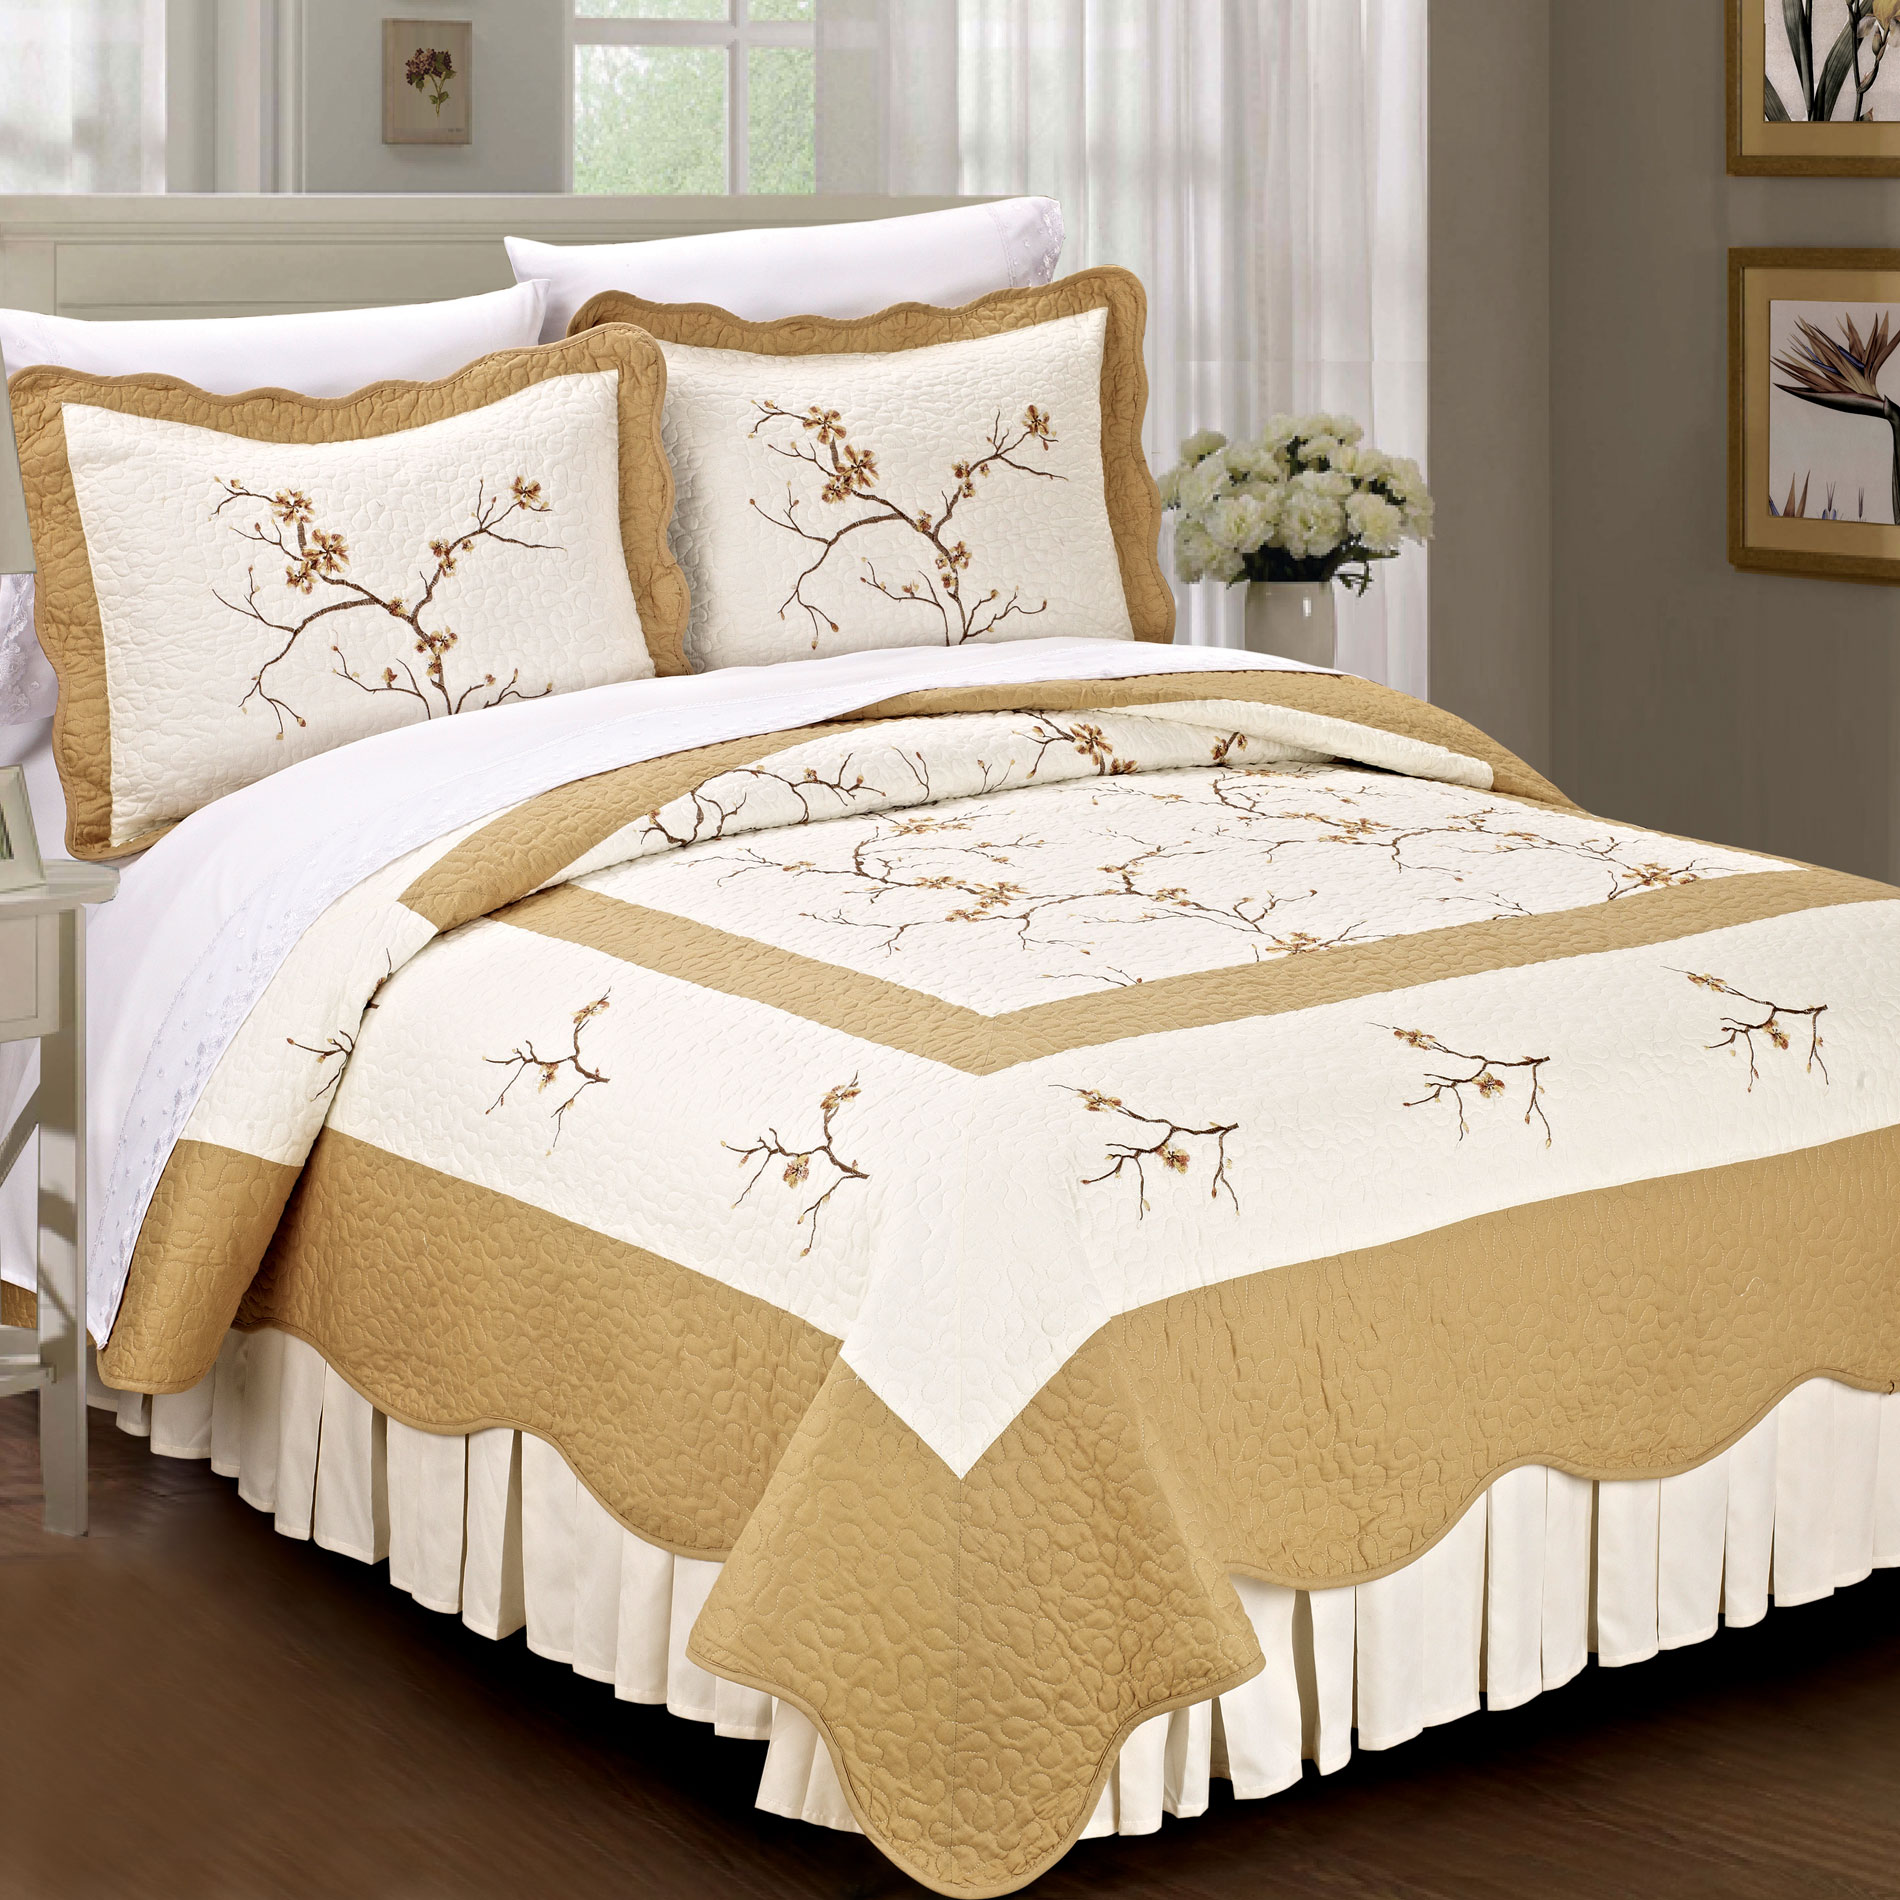 Cherry Blossom 100% Cotton Quilted 3 Piece Bed Spread Set Gold Queen